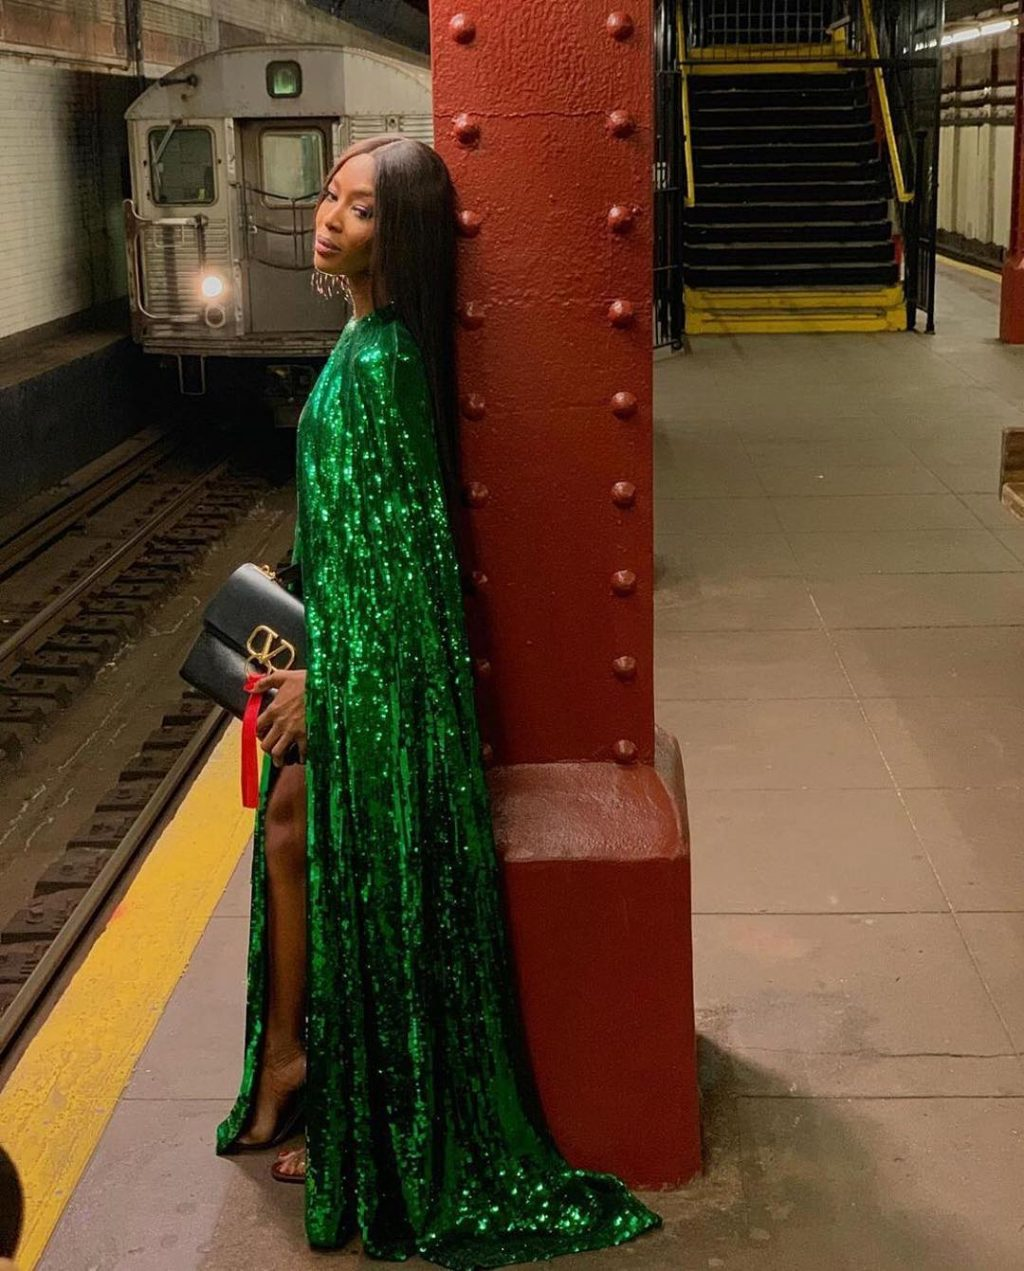 Take the Subway, but Make It Fashion Like This Supermodel